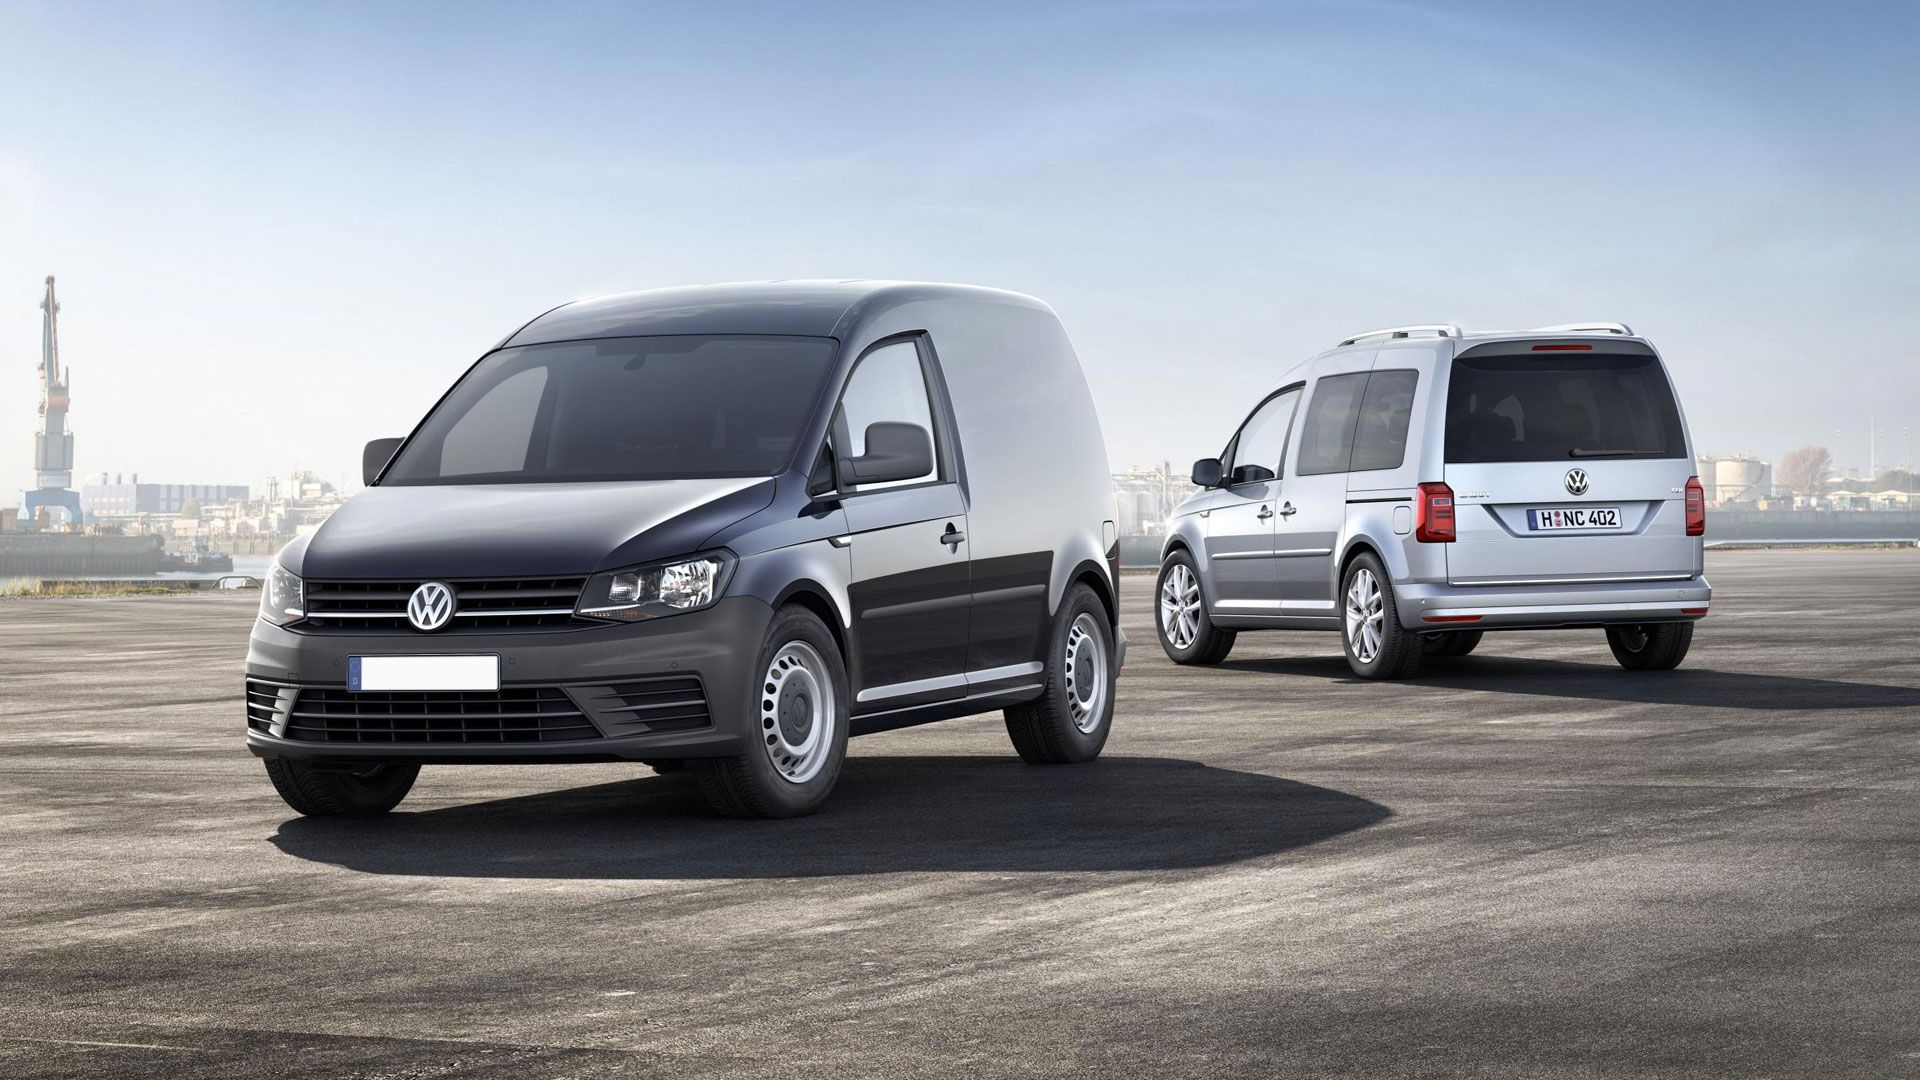 Looking For Reliable Vehicle Rental In Huntingdon Eastern Rent A Van Is Car Hire Company You Can Book Volkswagen Caddy Car Rental Service Car Rental Company